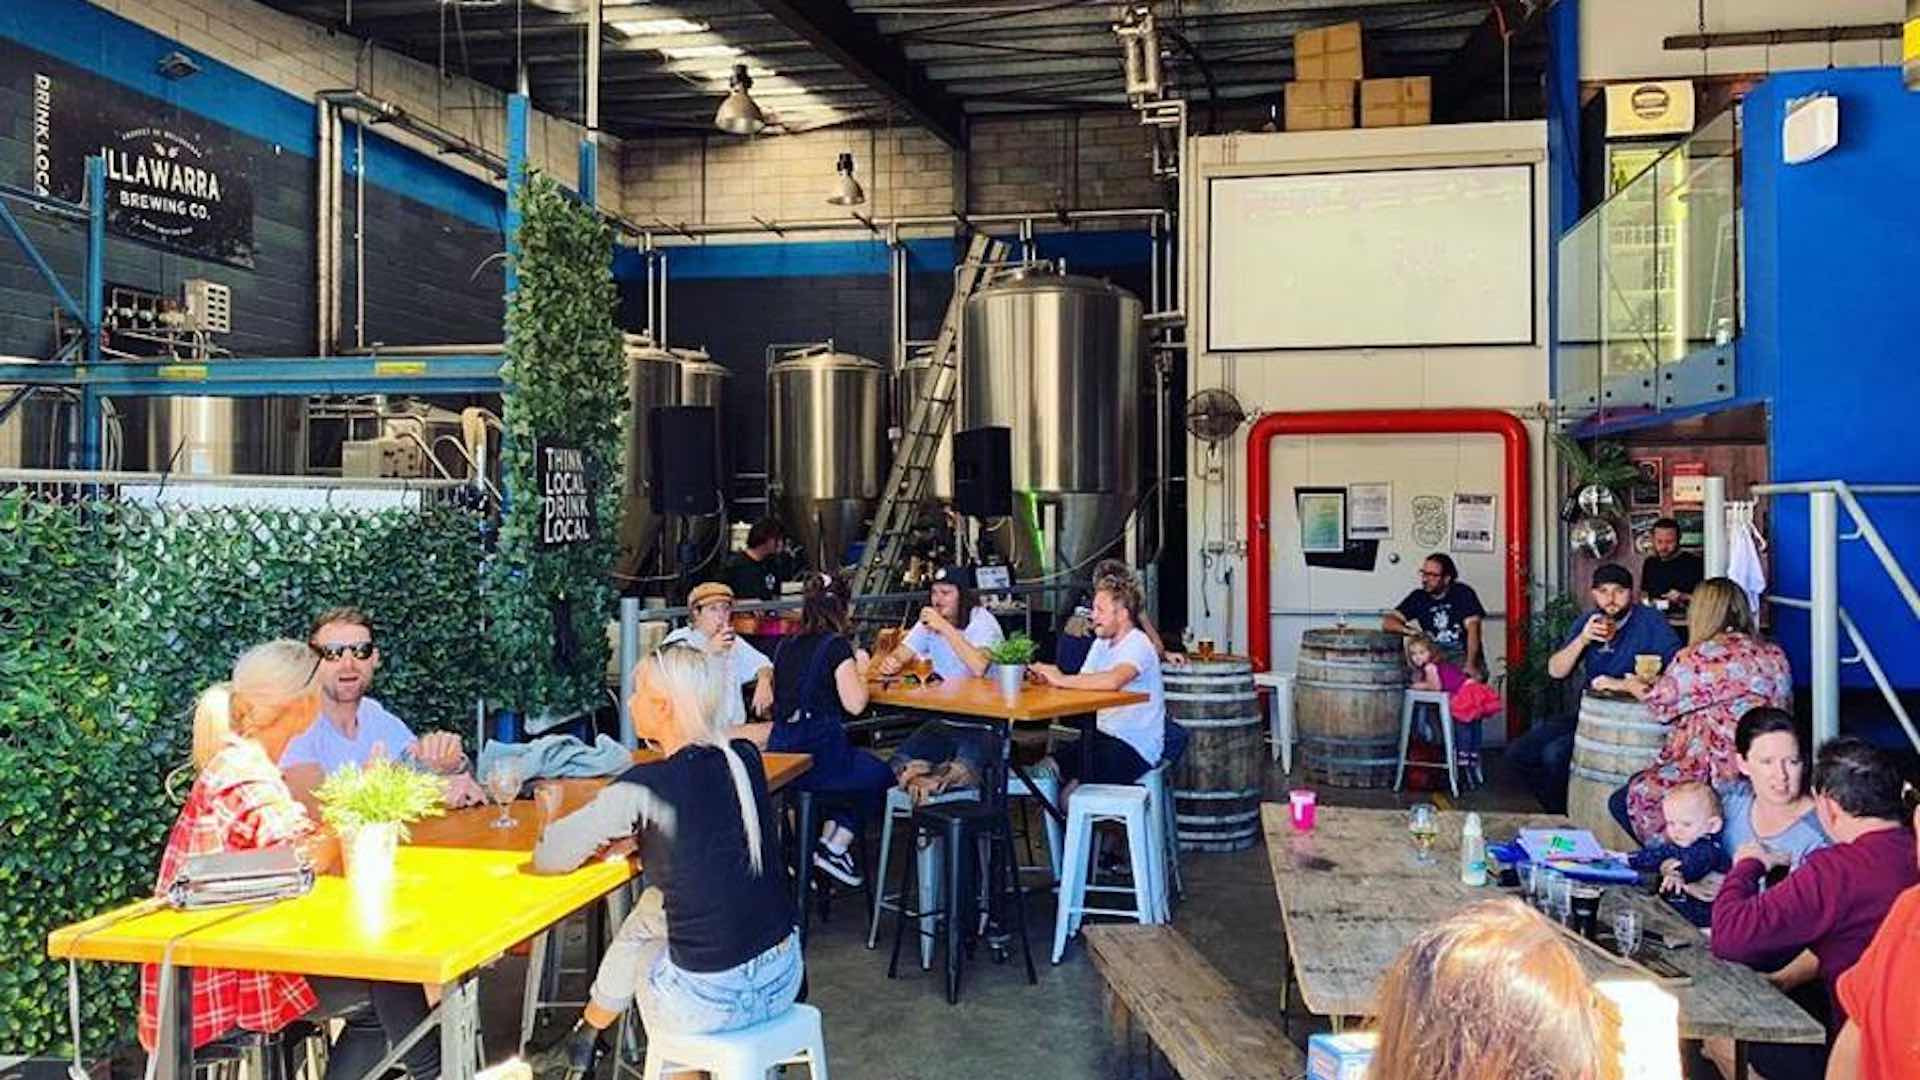 Illawarra Brewing Company Brewhouse